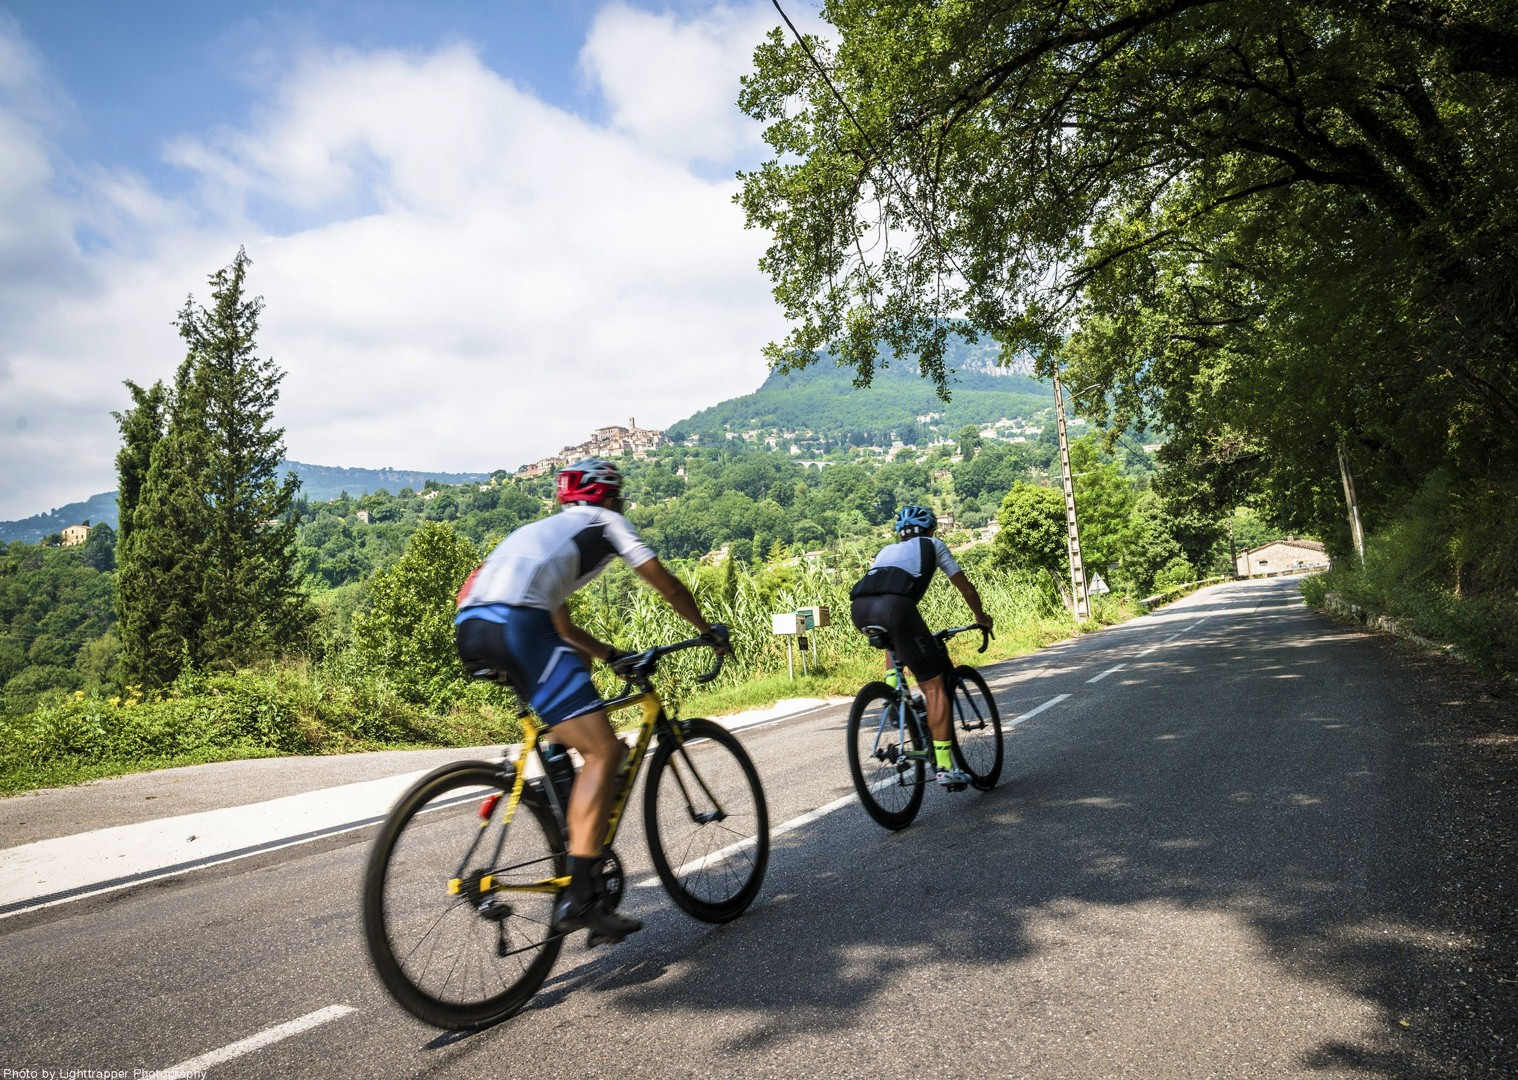 cycling-holiday-in-provence-france-saddle-skedaddle.jpg - France - Provence - Alpes Maritimes - Guided Road Cycling Holiday - Road Cycling